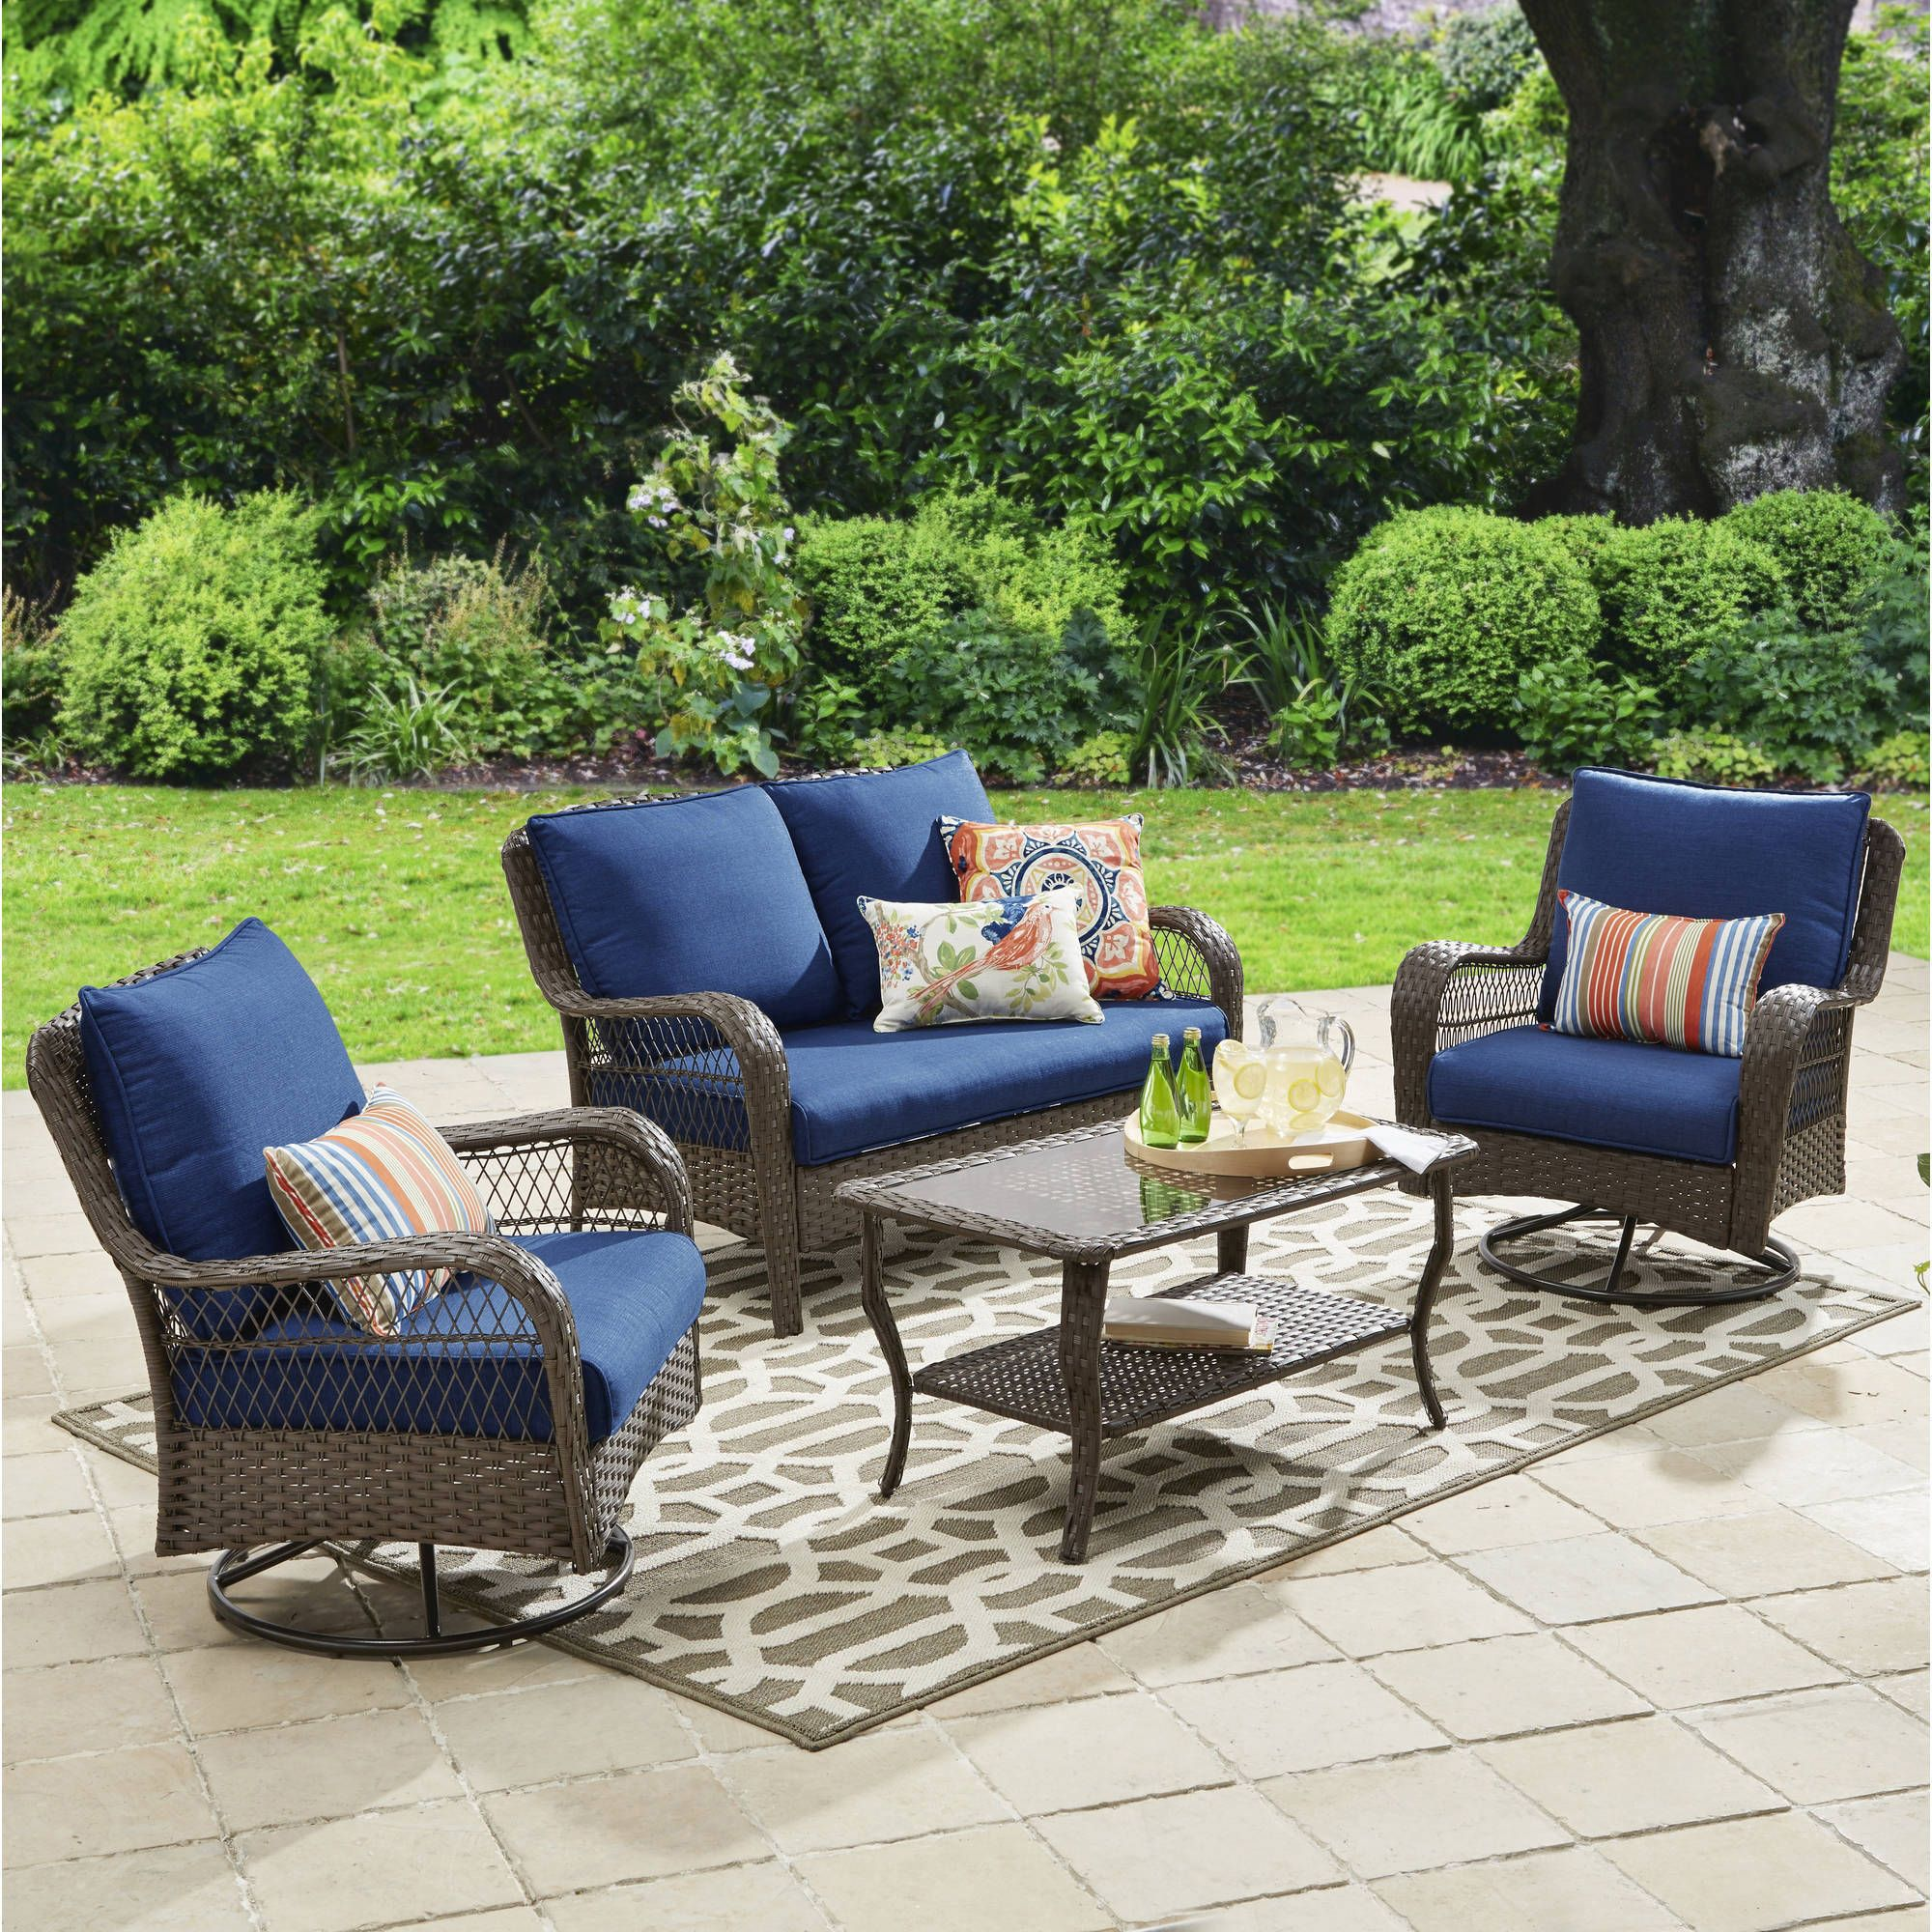 Buy Better Homes and Gardens Colebrook 4 Piece Outdoor